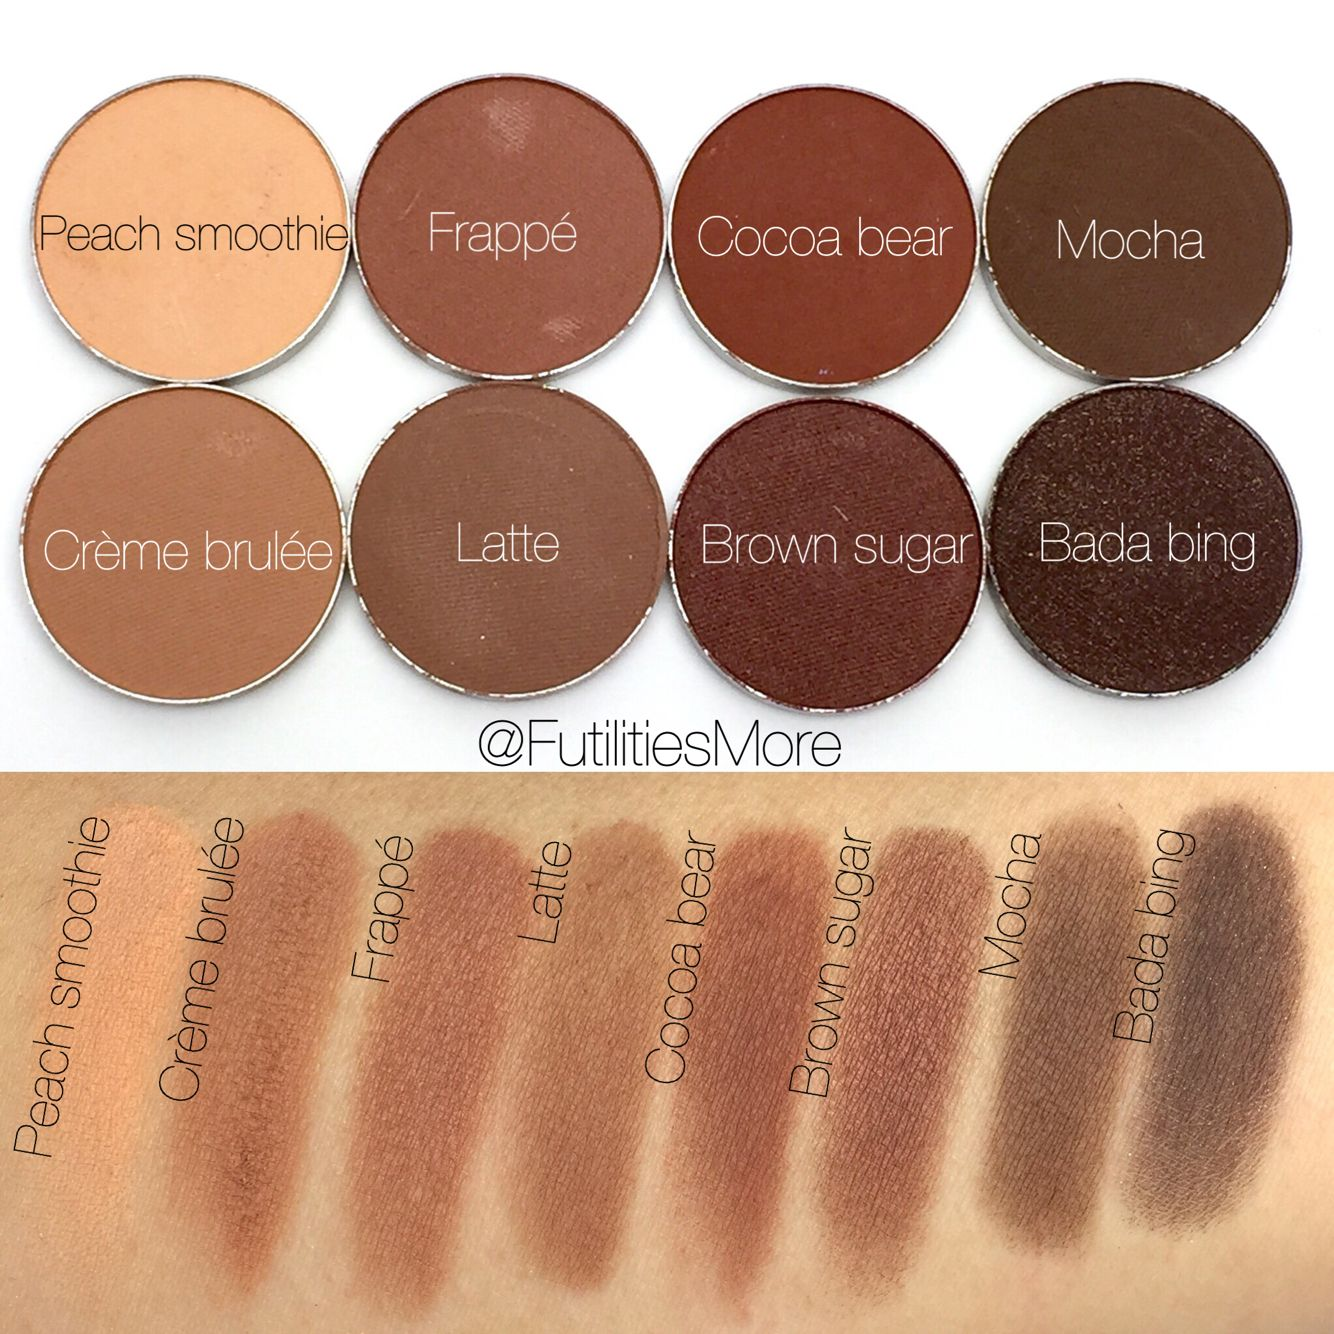 Makeup Geek Eyeshadow Swatches Peach Smoothie Creme Brulee Frappe Latte Cocoa Bear Brown Makeup Geek Eyeshadow Makeup Geek Eyeshadow Swatches Makeup Geek